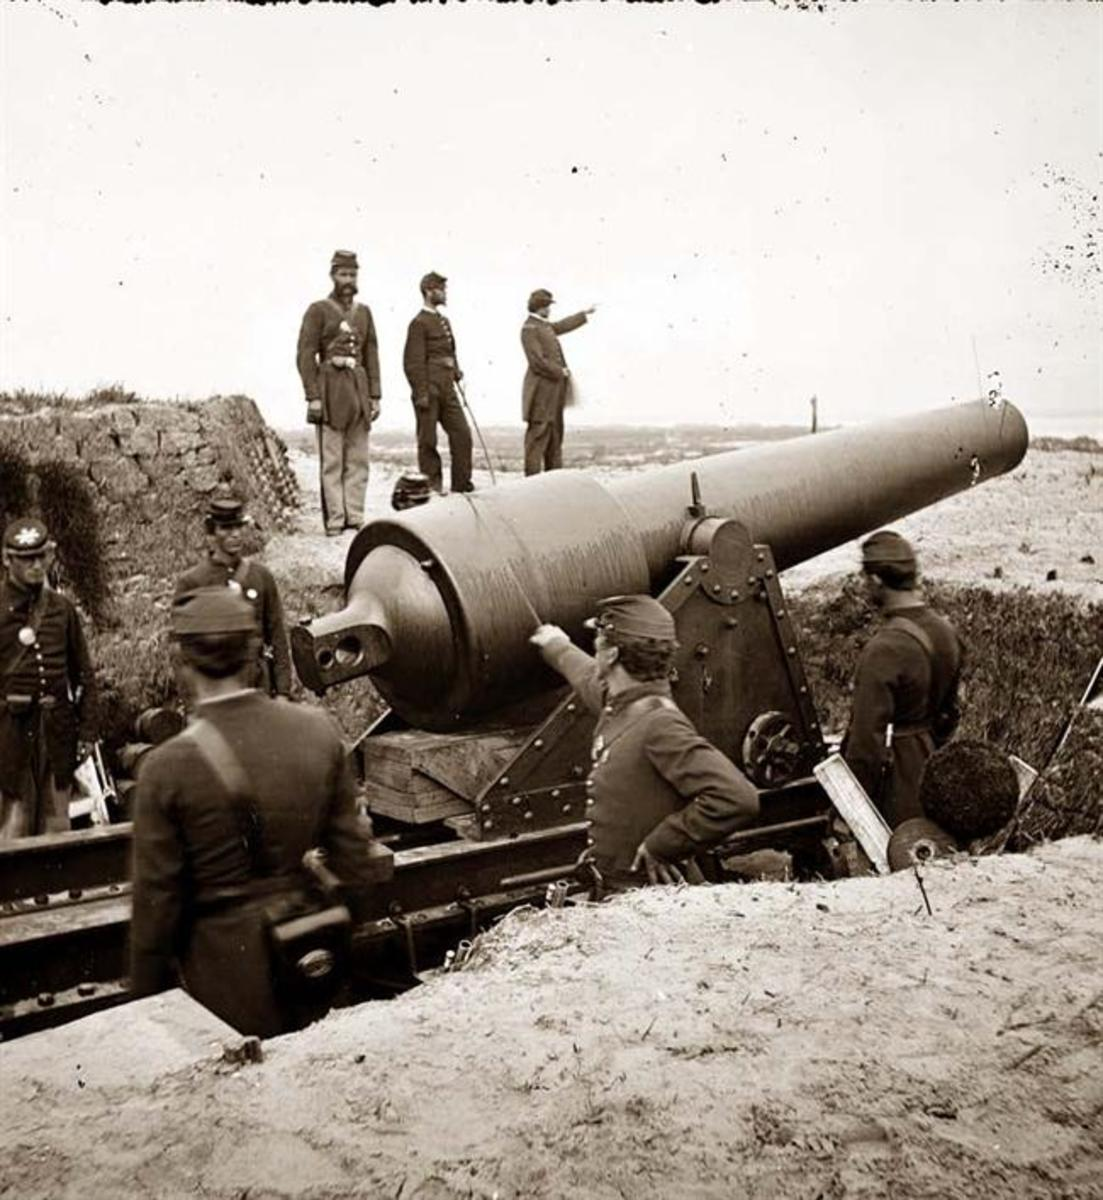 Union soldiers with big gun at Fort McAllister in Georgia